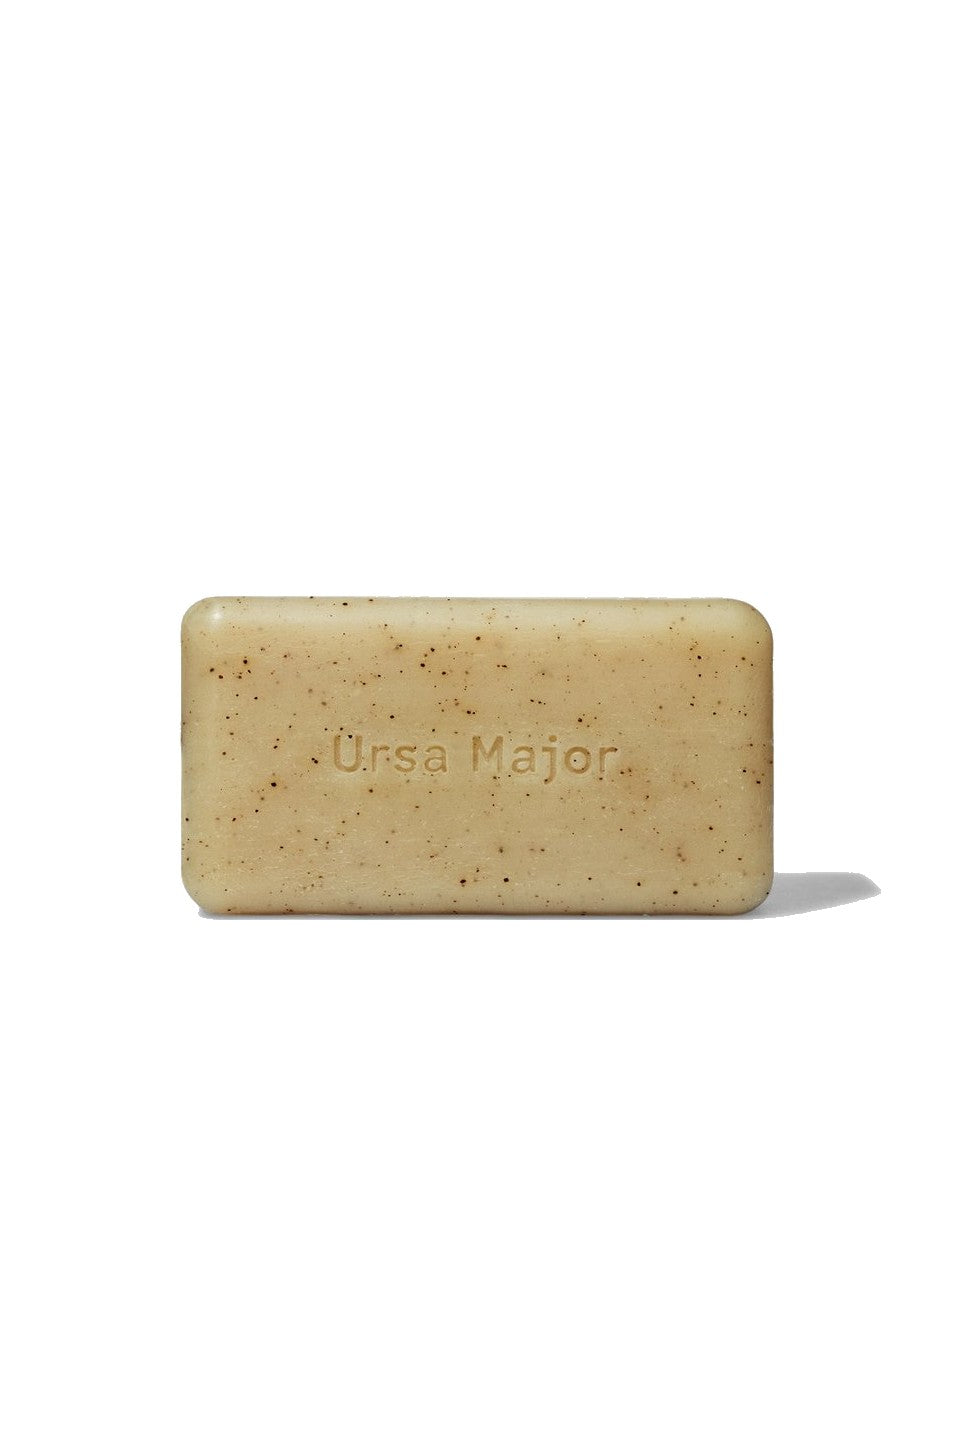 Ursa Major - Morning Mojo Soap